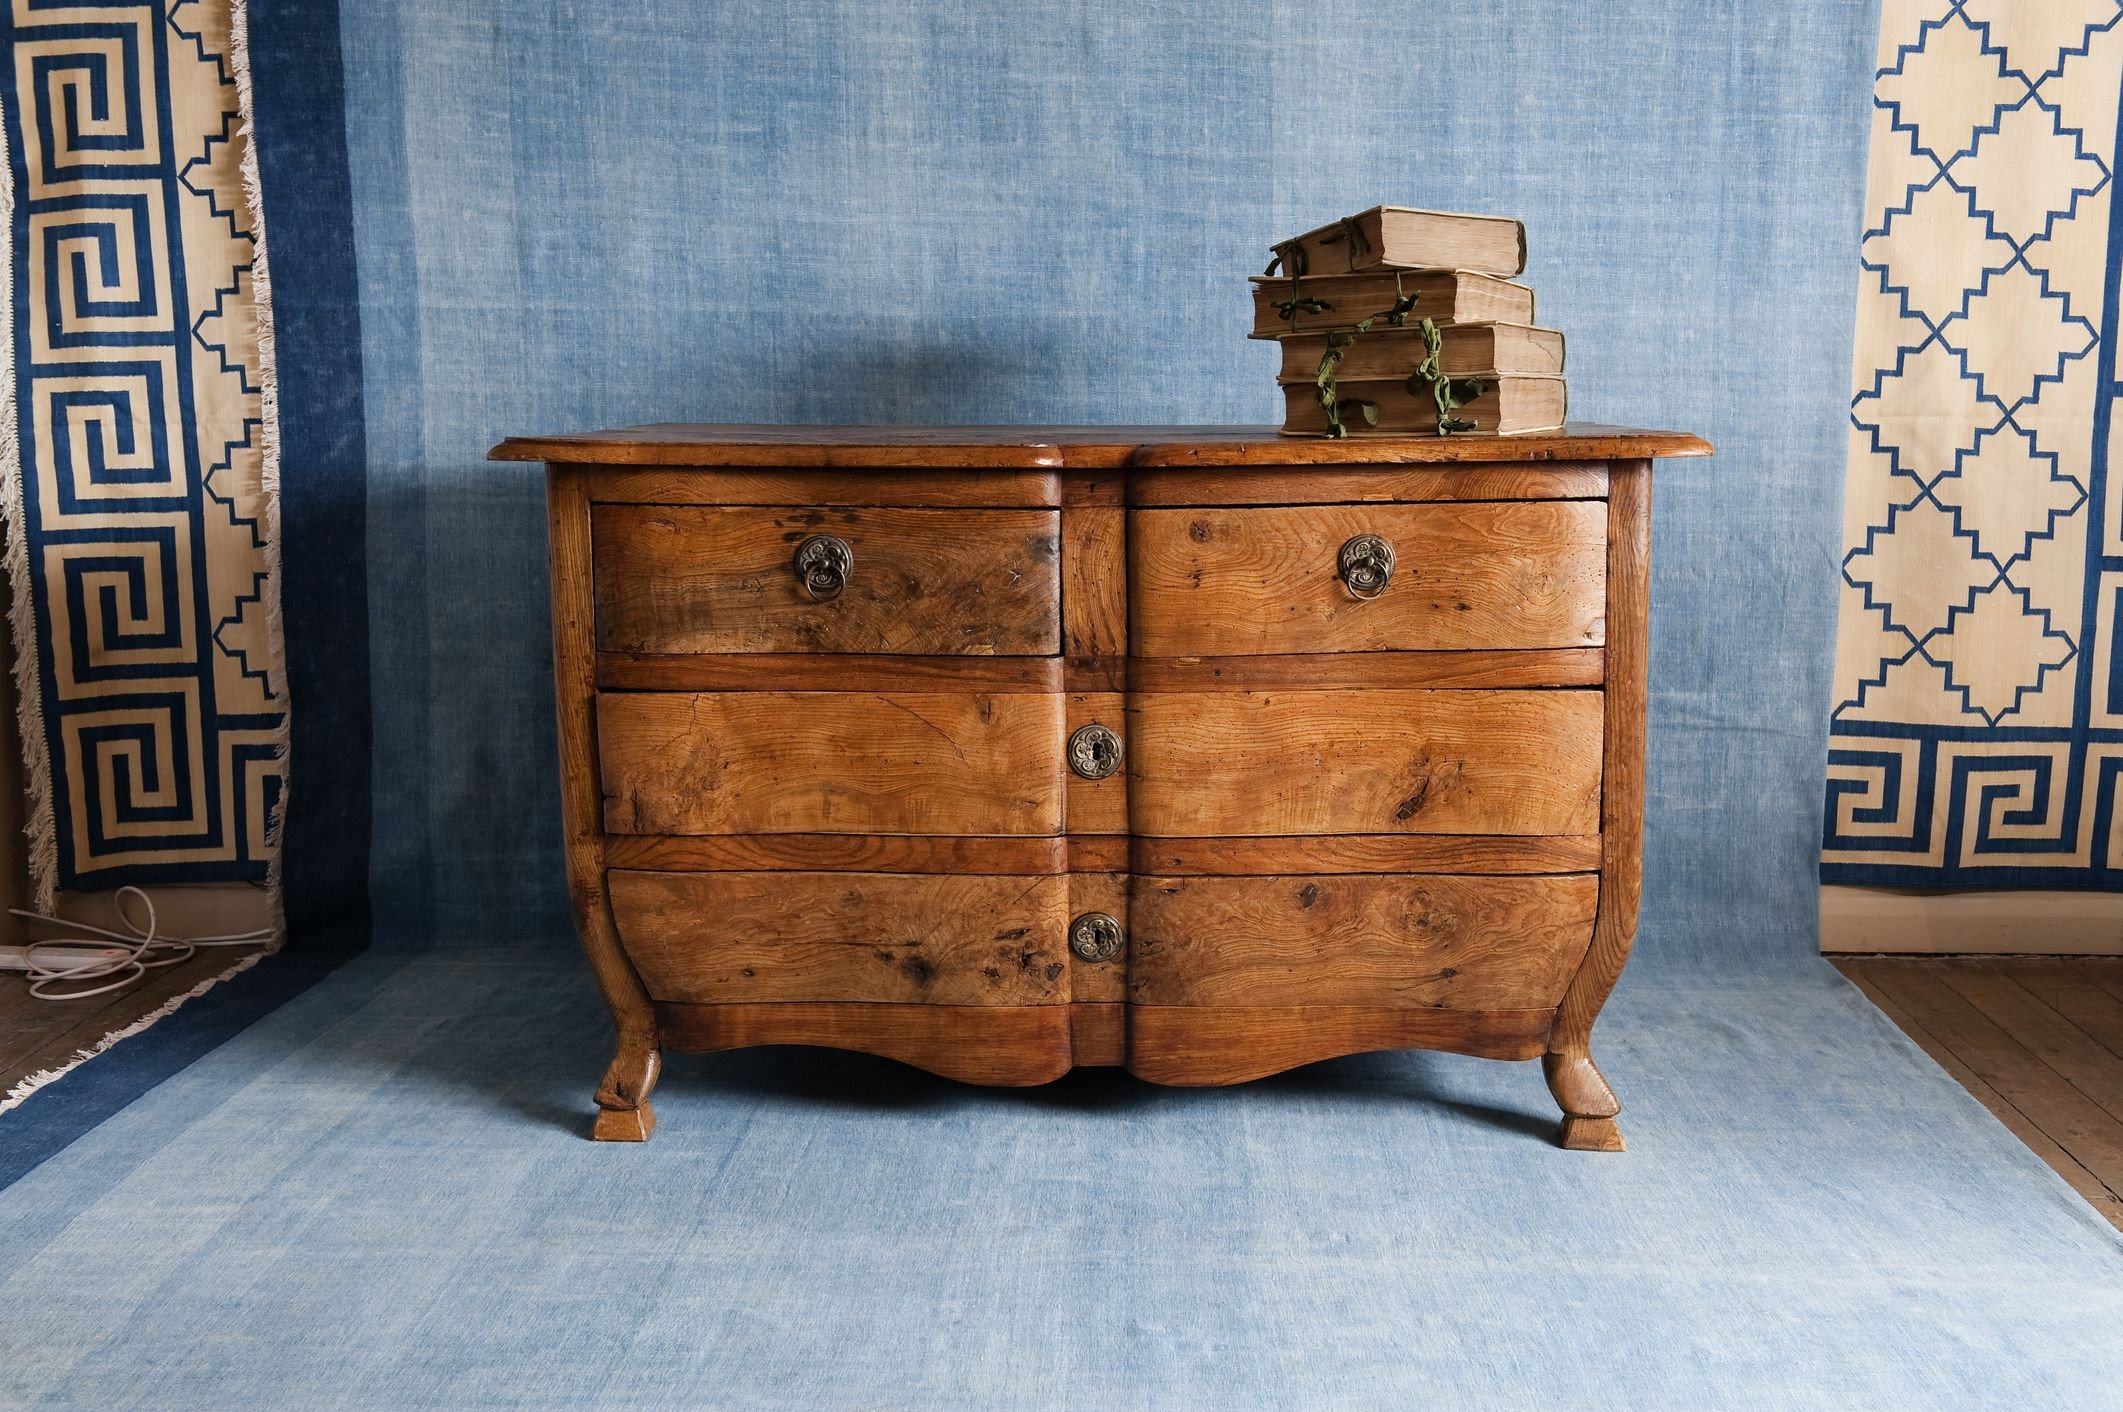 1940s Bedroom Furniture Styles Fresh when is Okay to Repair and Refinish Antique Furniture